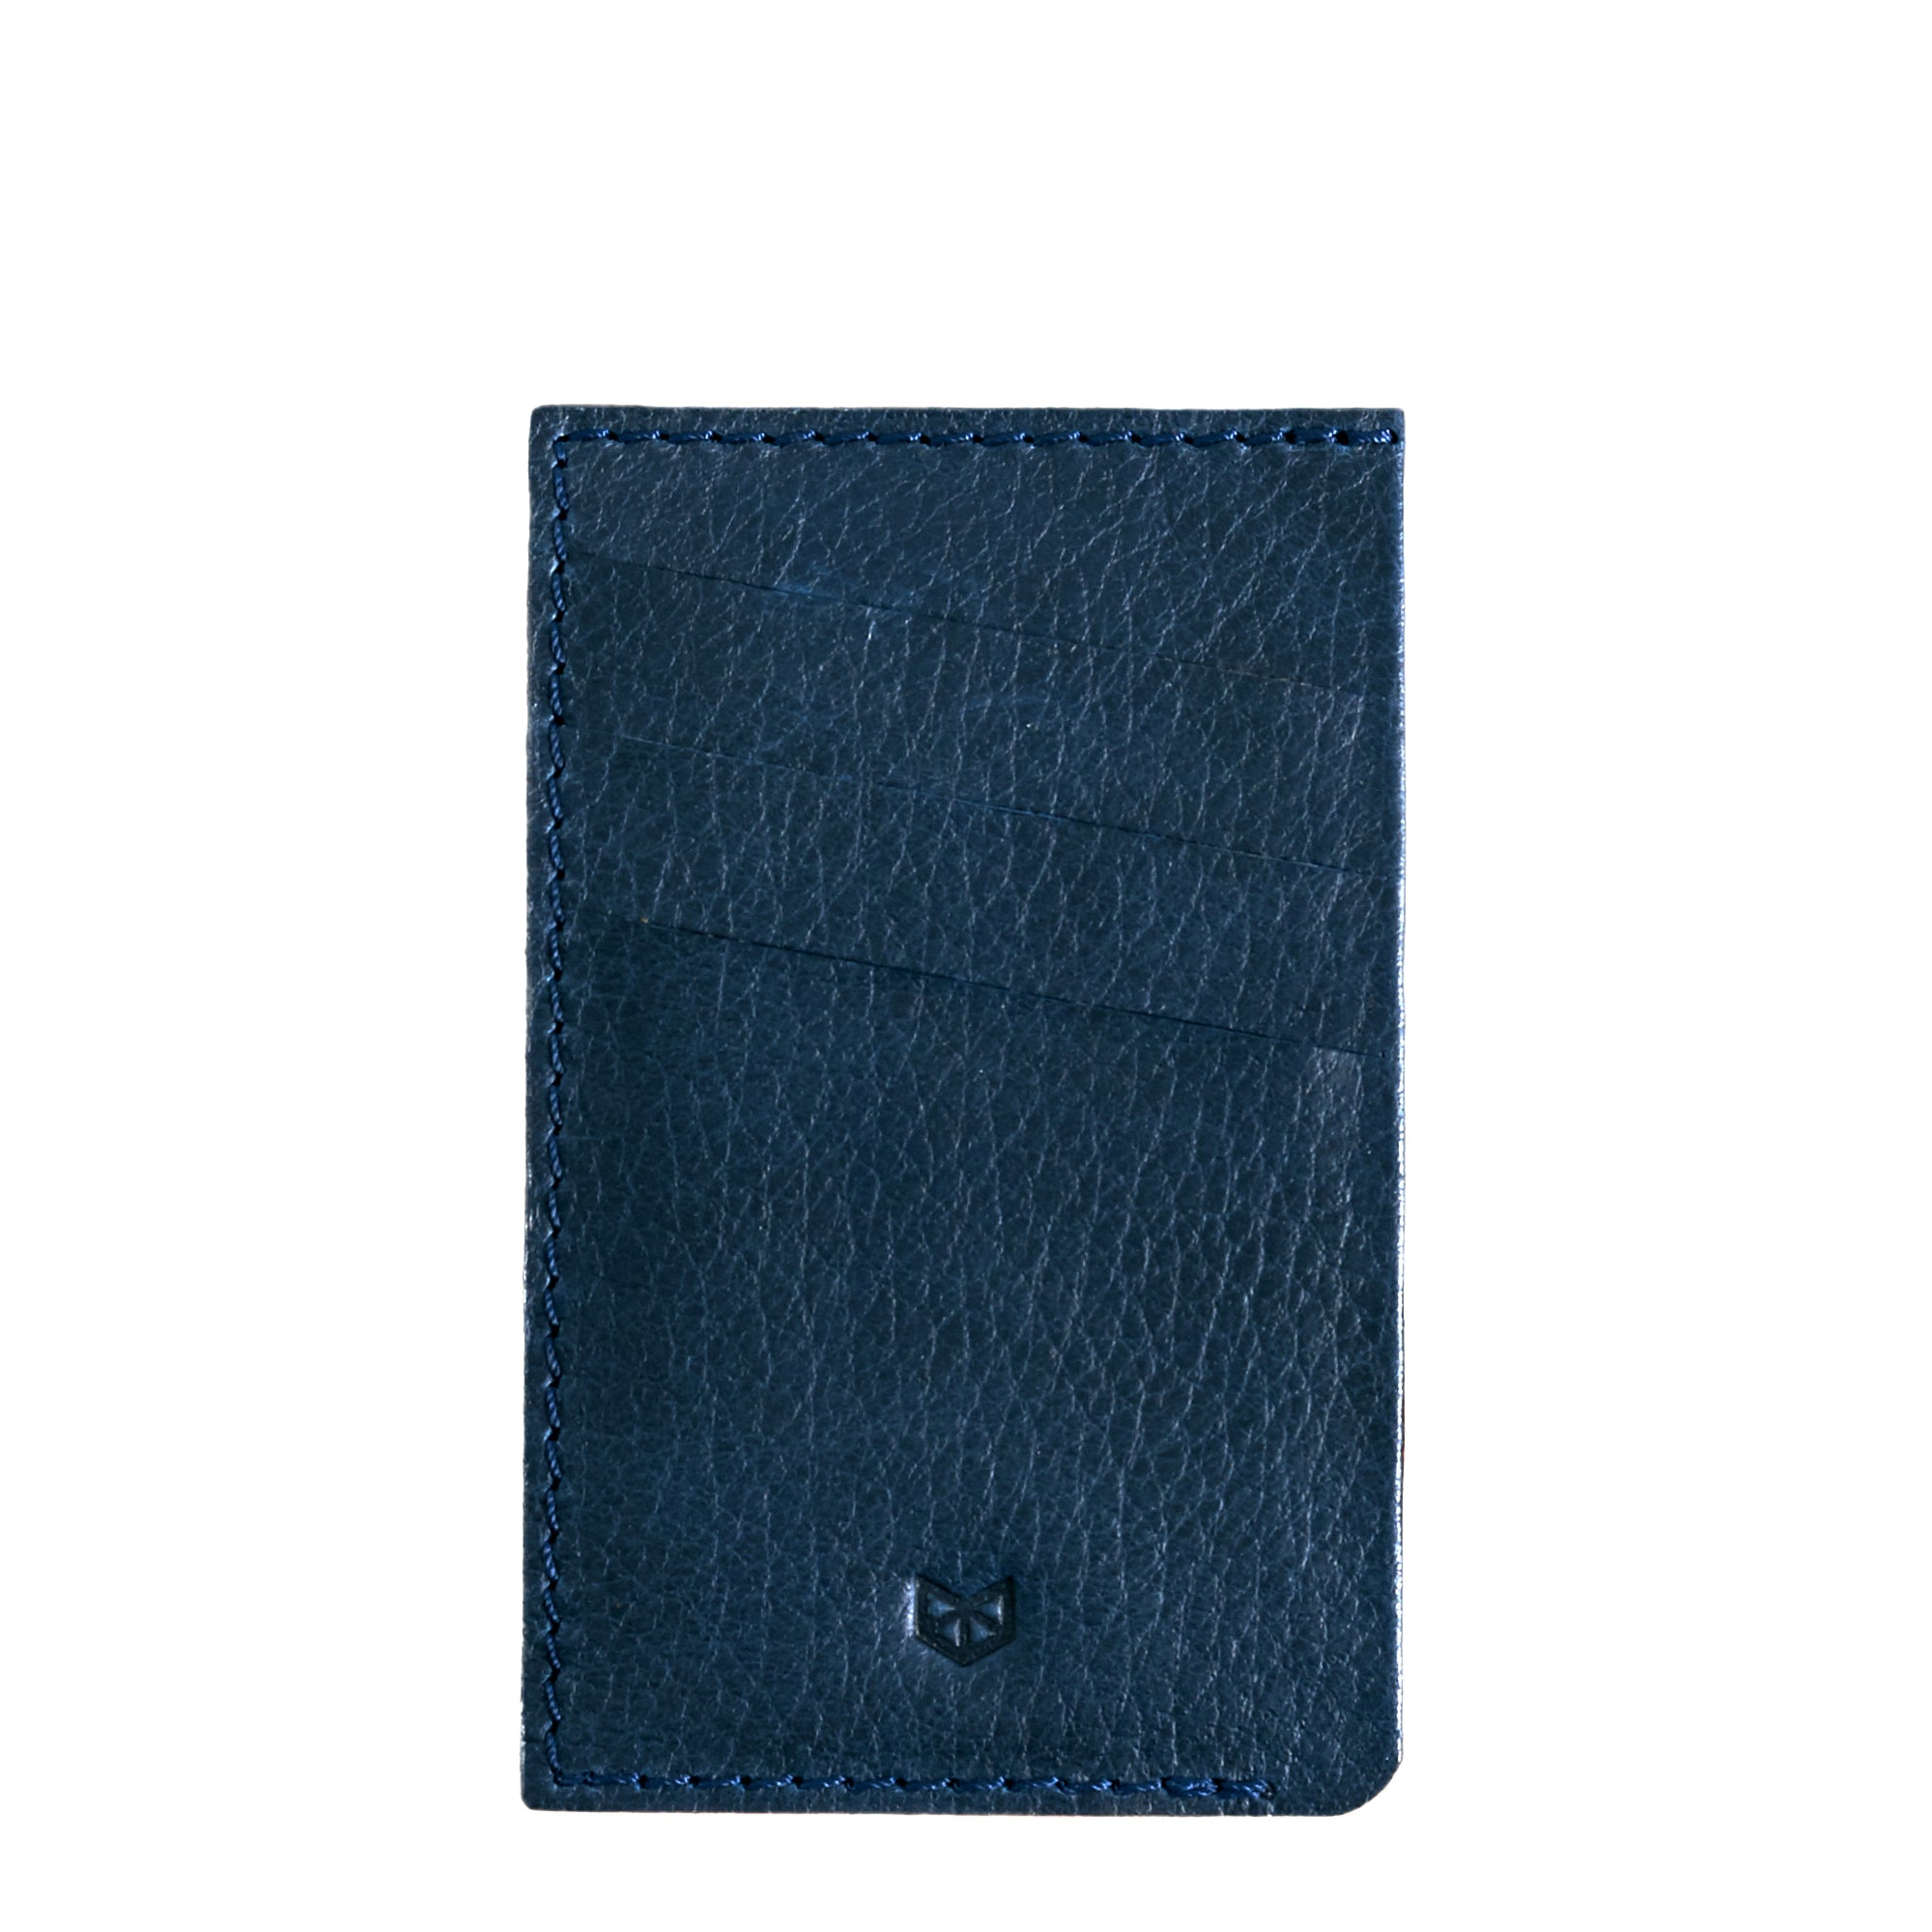 Front Cover. Card Holder Wallet Blue by Capra Leather